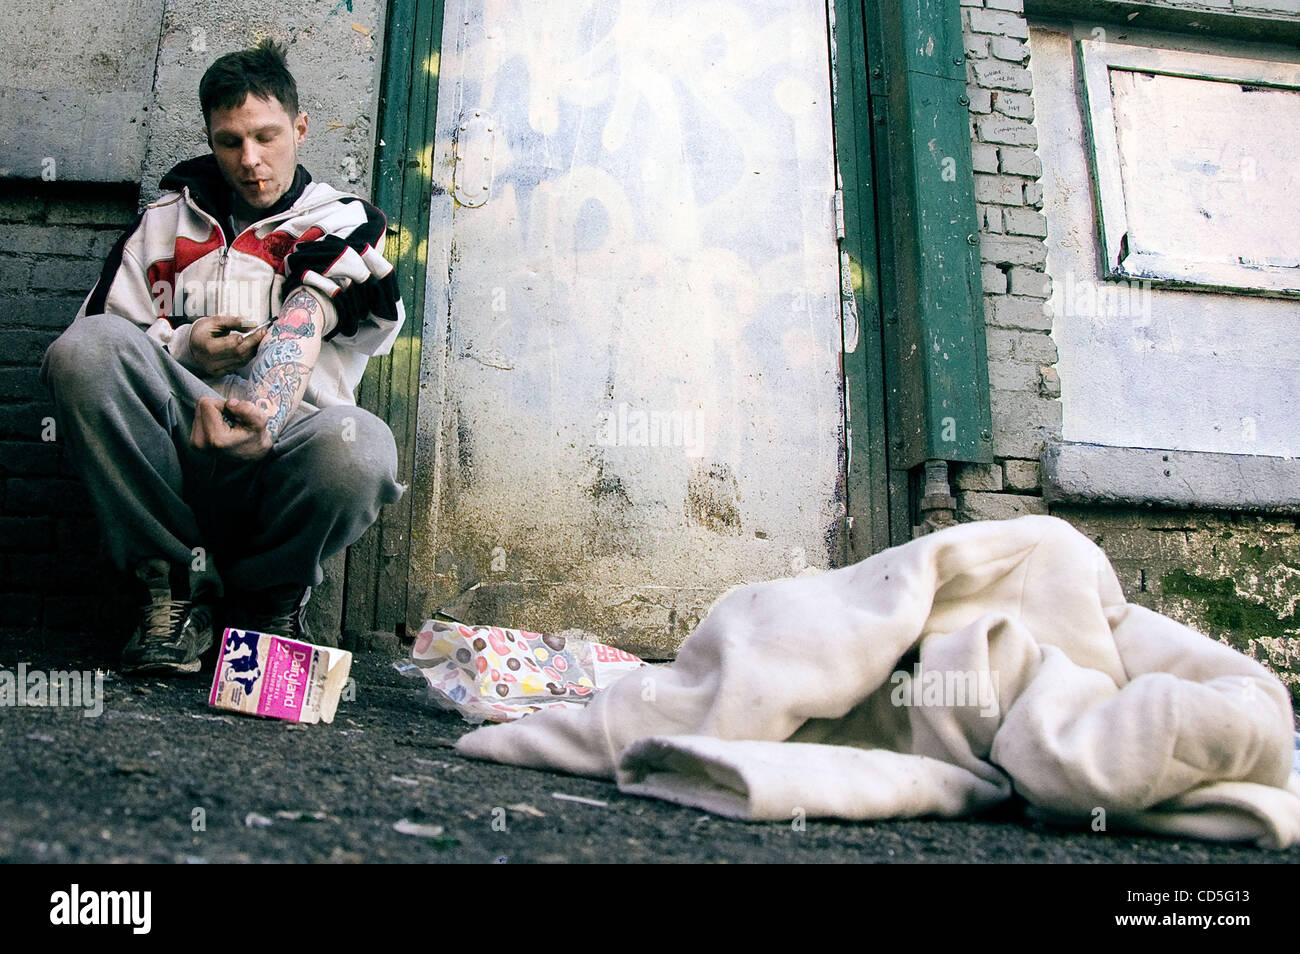 Jun. 12, 2008 - Vancouver, British Columbia, Canada - Dope sick and broke, Phil 'gets better' in the alley - Stock Image